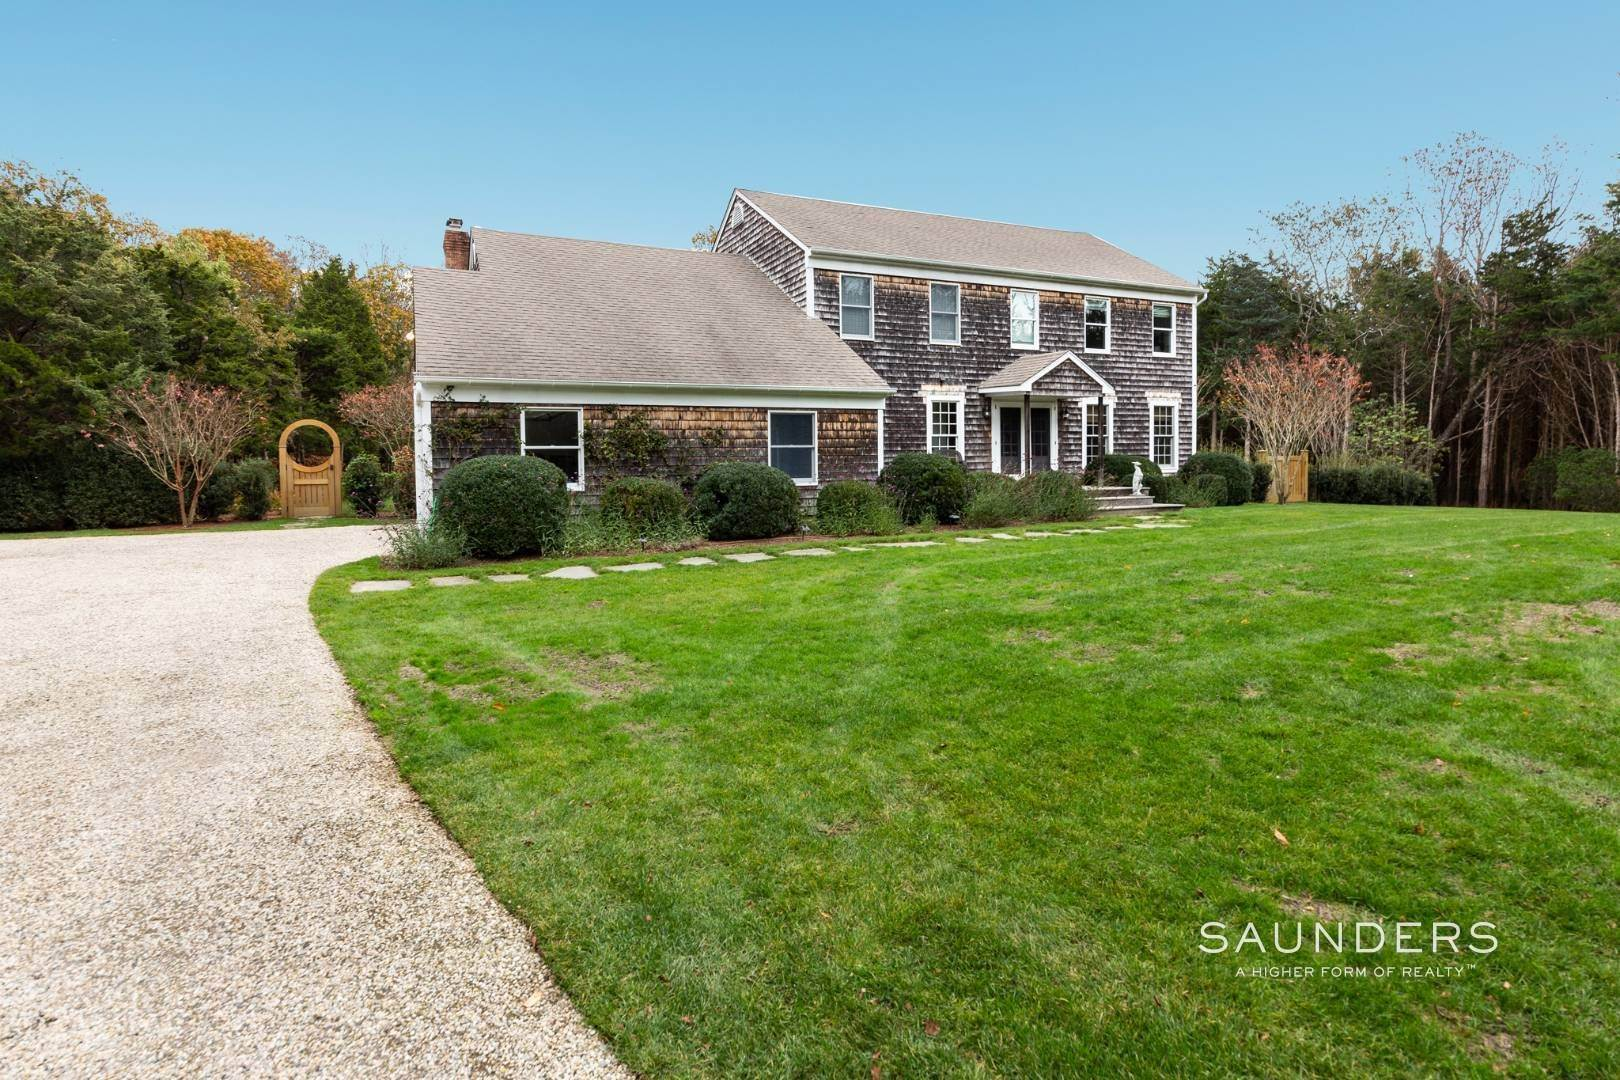 Single Family Homes at North Haven On Quiet Cul De Sac With 20'X50' Heated Gunite Pool Sag Harbor, Southampton Town, NY 11963